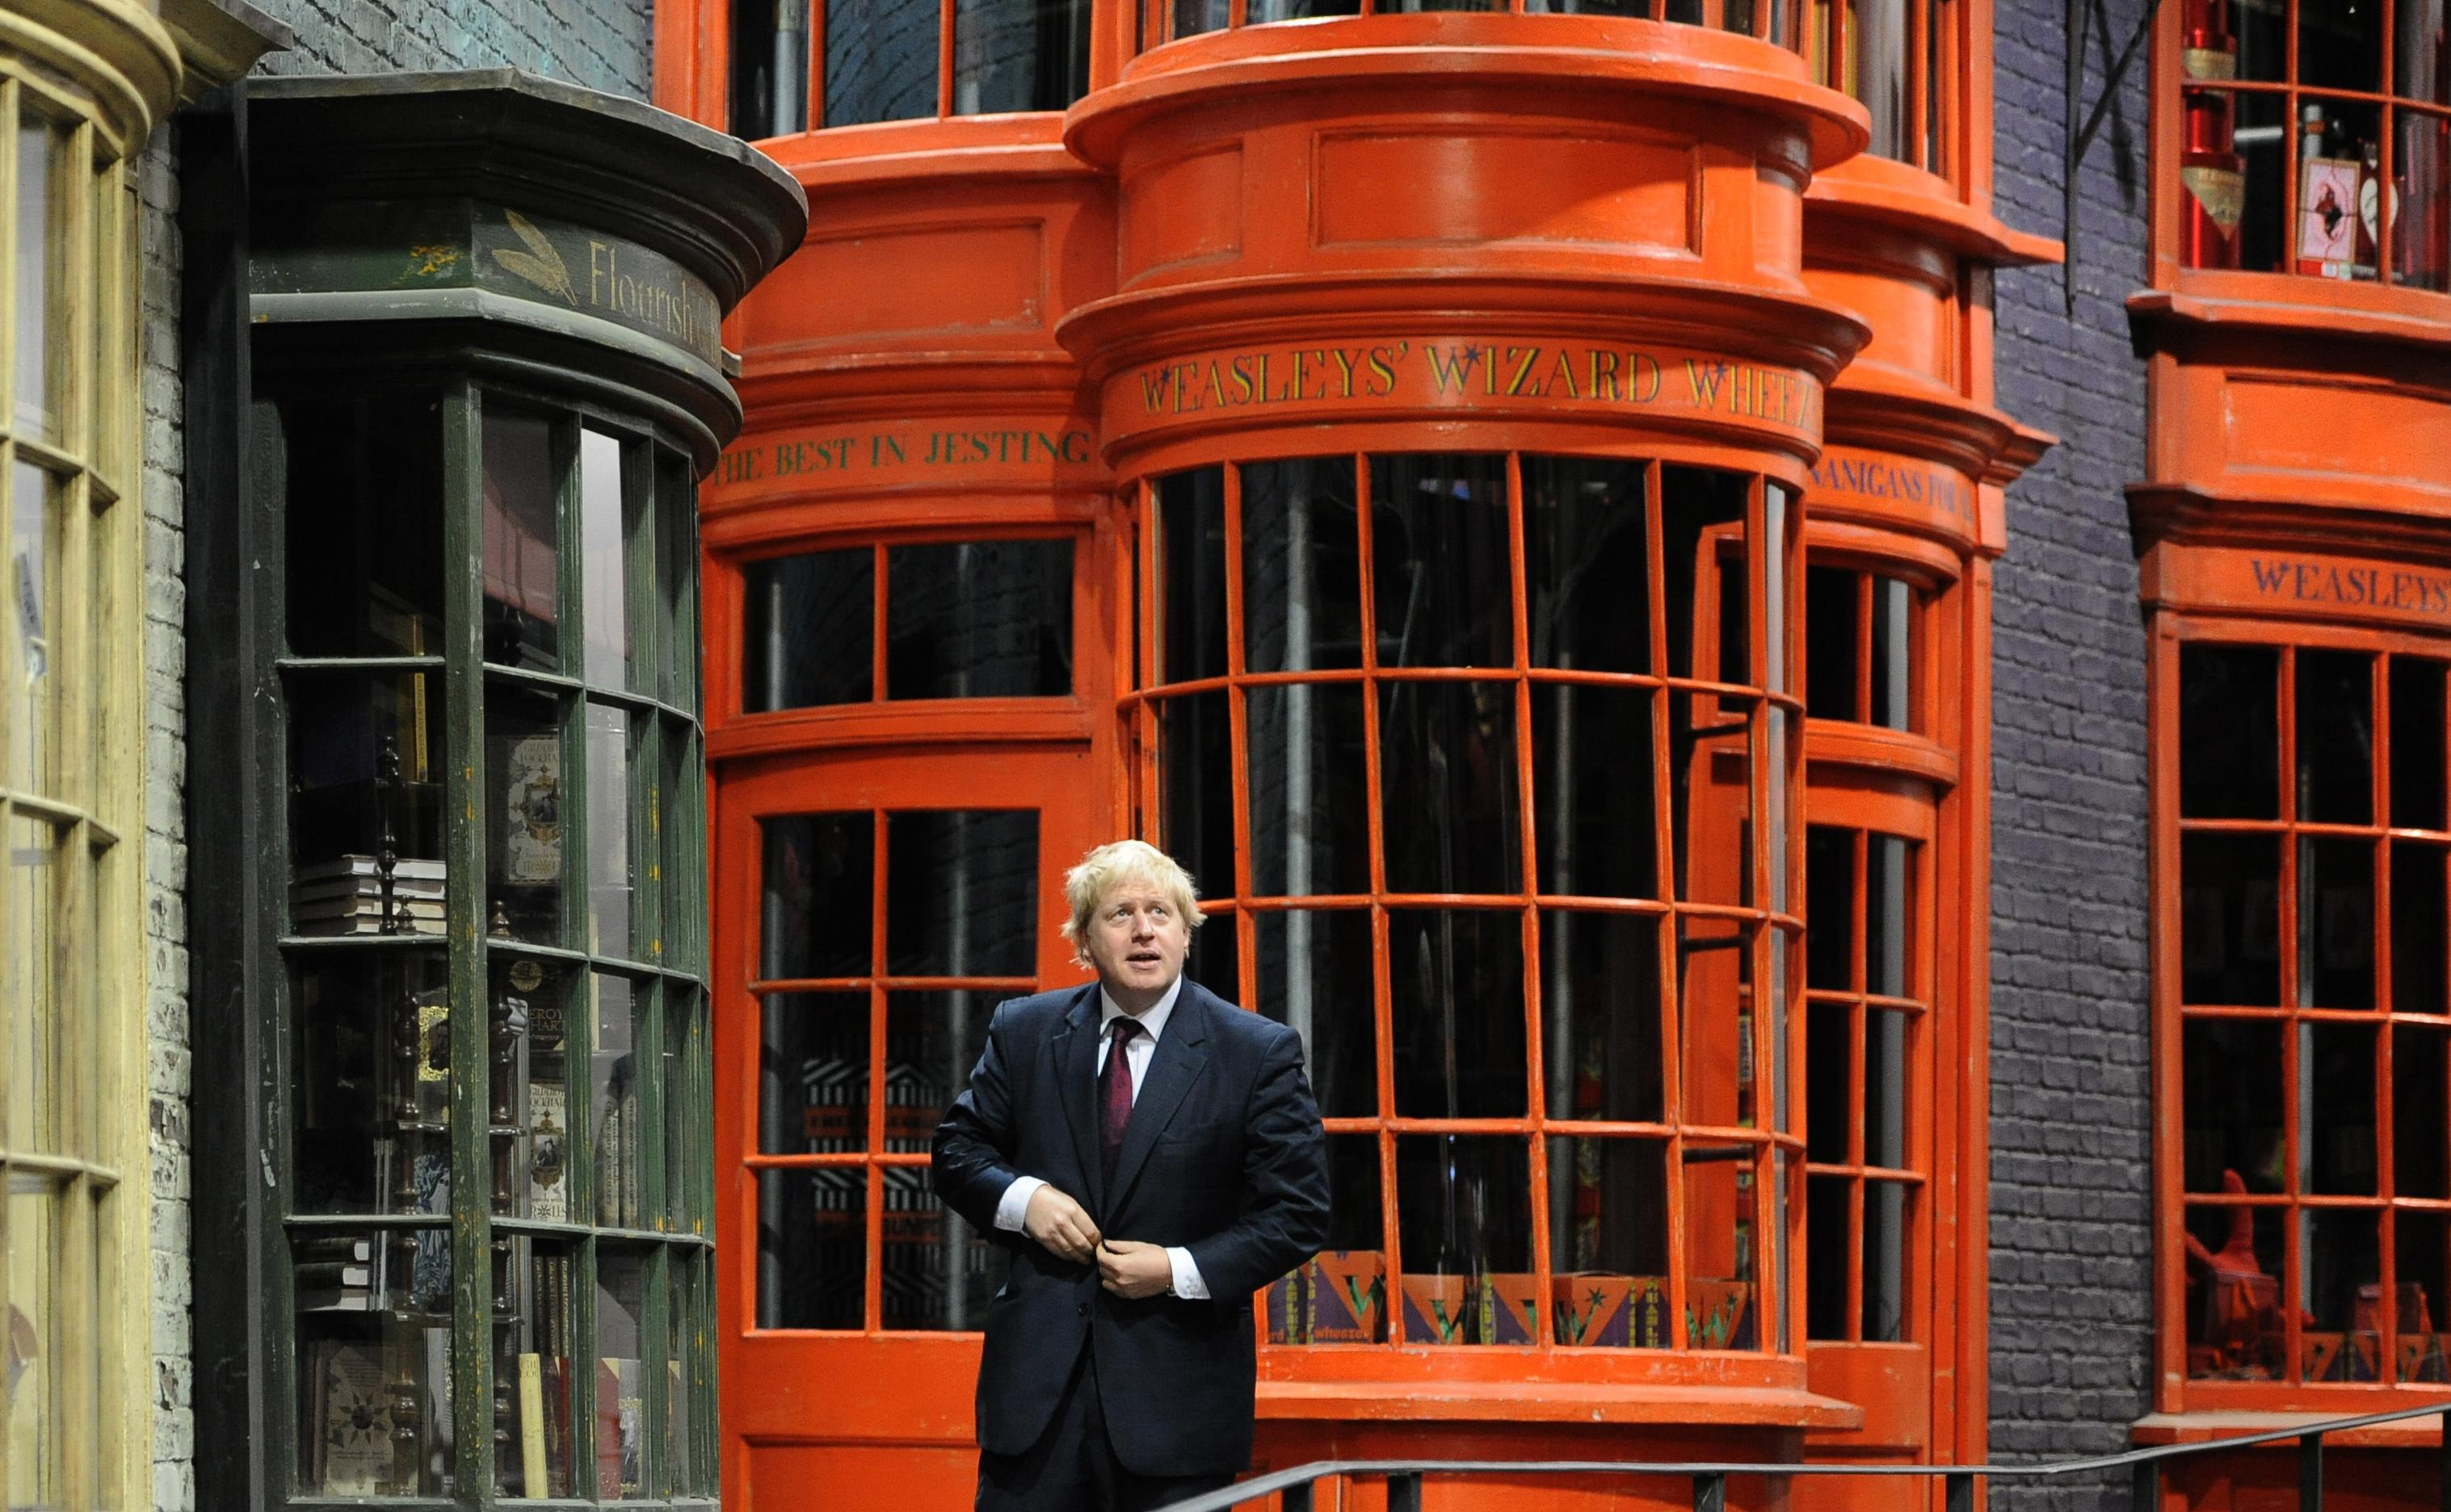 Mayor of London Boris Johnson walks down Diagon Alley as he visits the new attraction 'The Making of Harry Potter' at Warner Brothers studios in Leavesden, Hertfordshire. PRESS ASSOCIATION Photo Monday December 19, 2011. Photo credit should read: Anthony Devlin/PA Wire